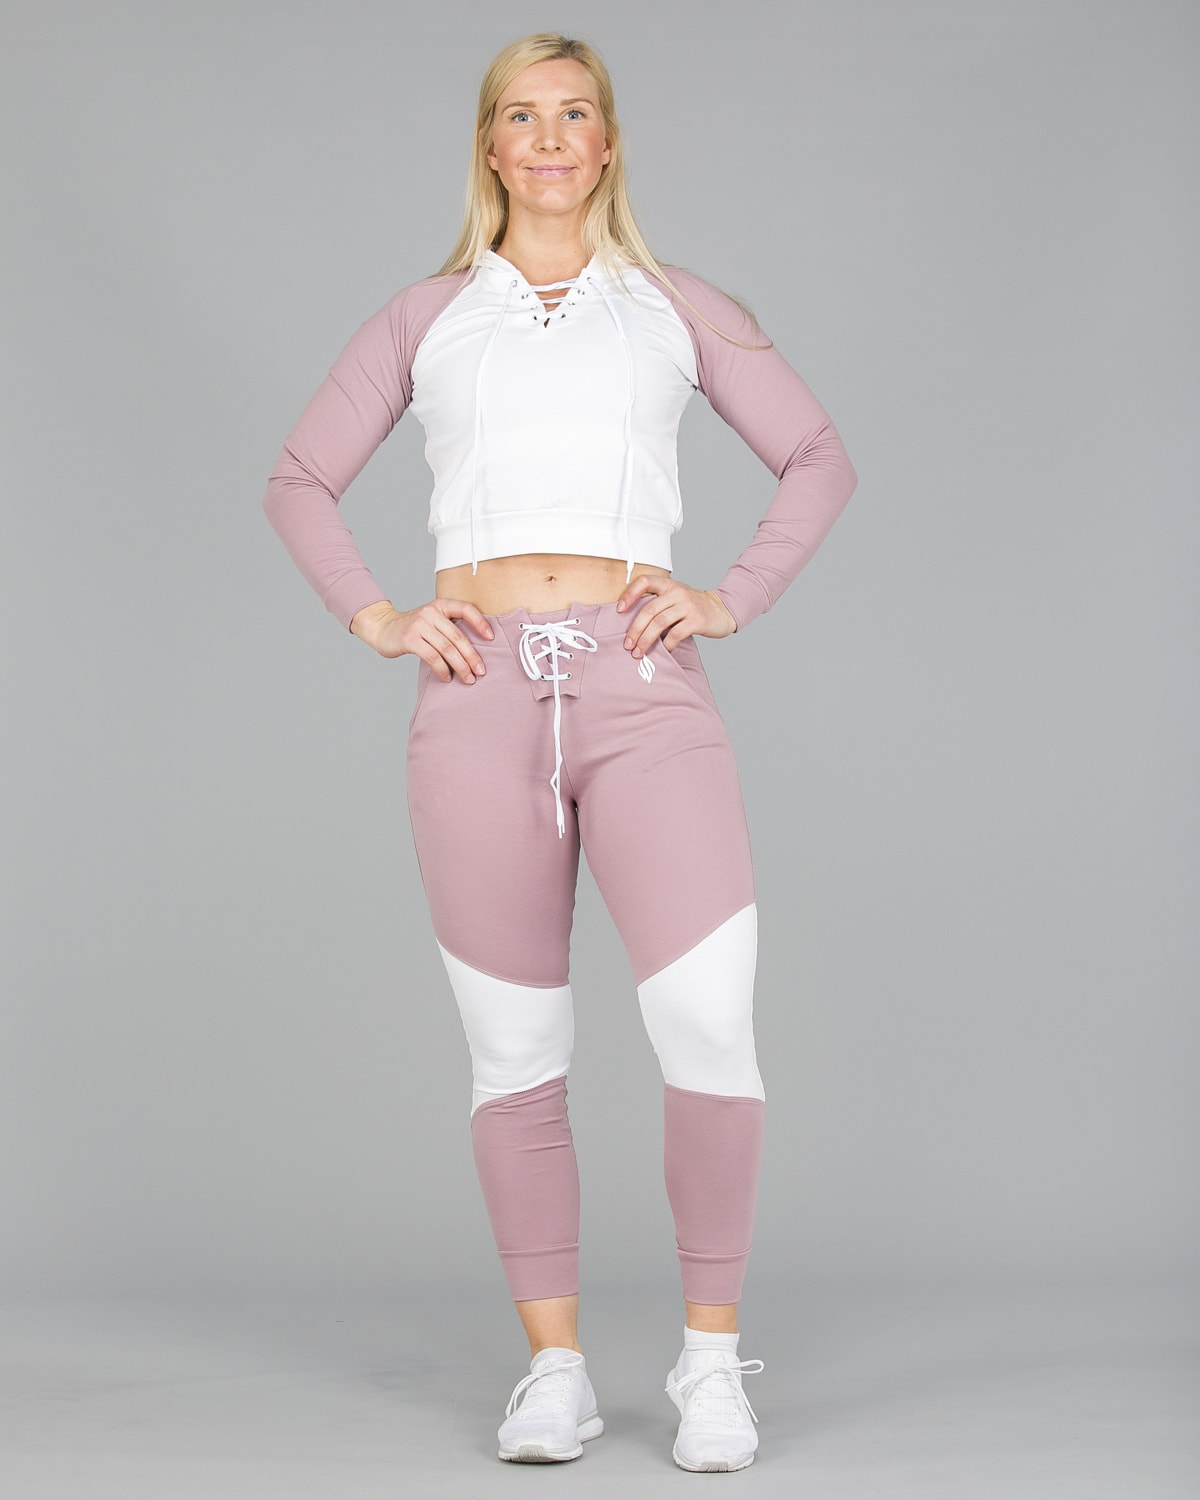 We Are Fit Melrose Pant6